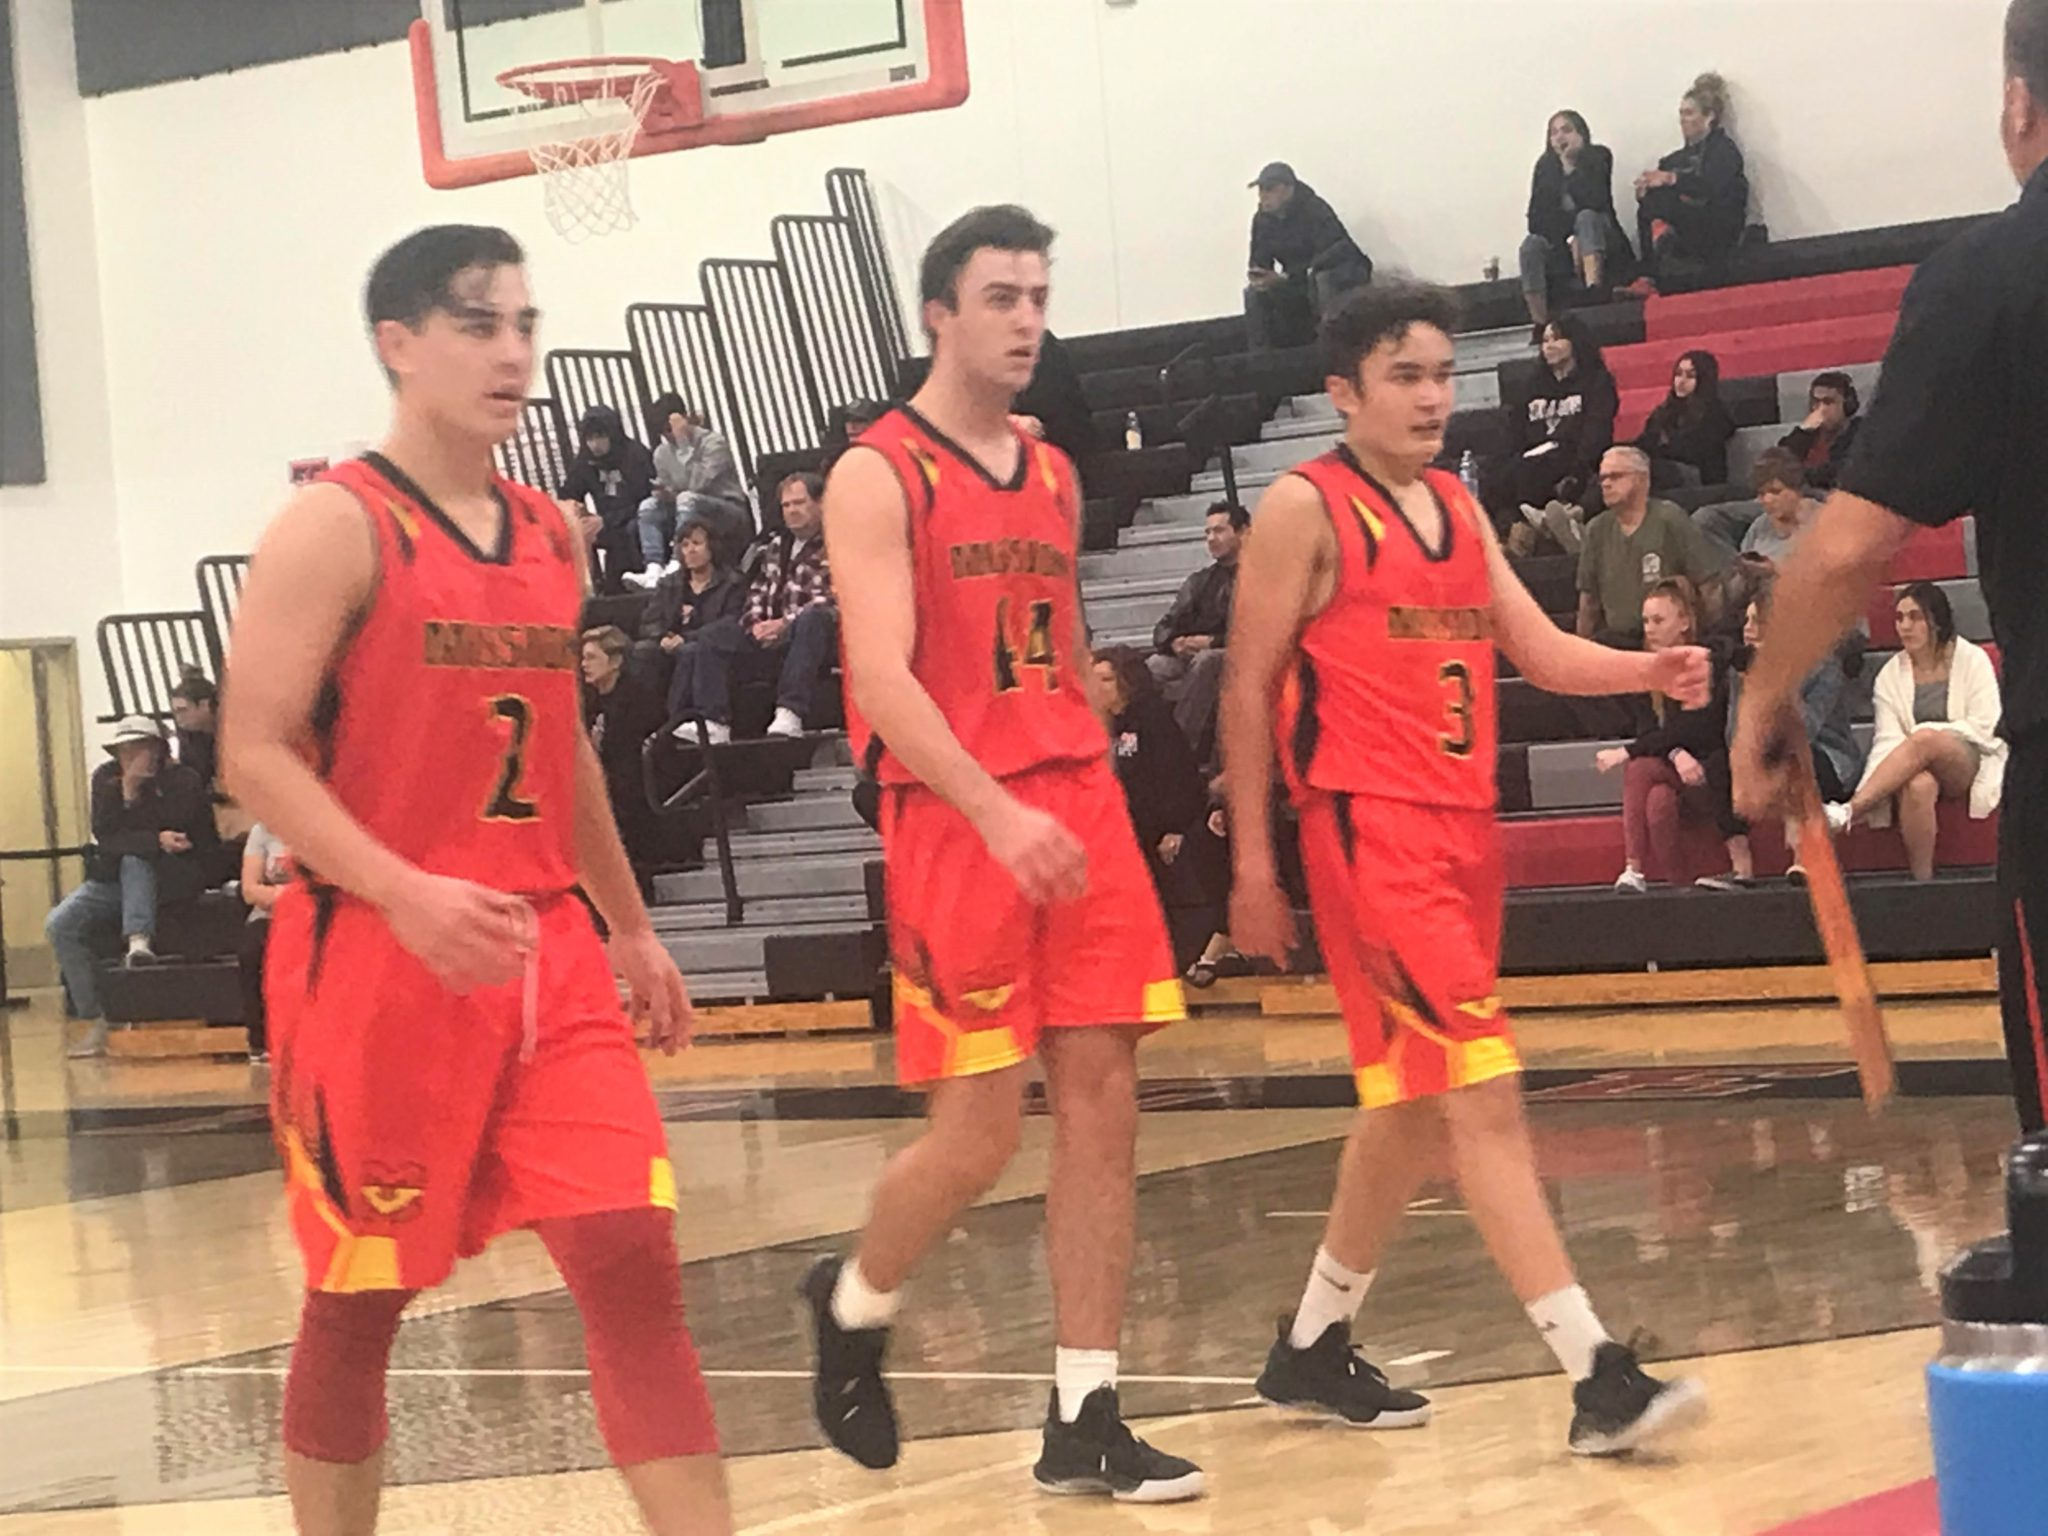 Estancia Christmas Basketball Tournament 2021 Schedules It S A Hoops Filled Monday With Four Oc Boys Basketball Tournaments Oc Sports Zone Mobile